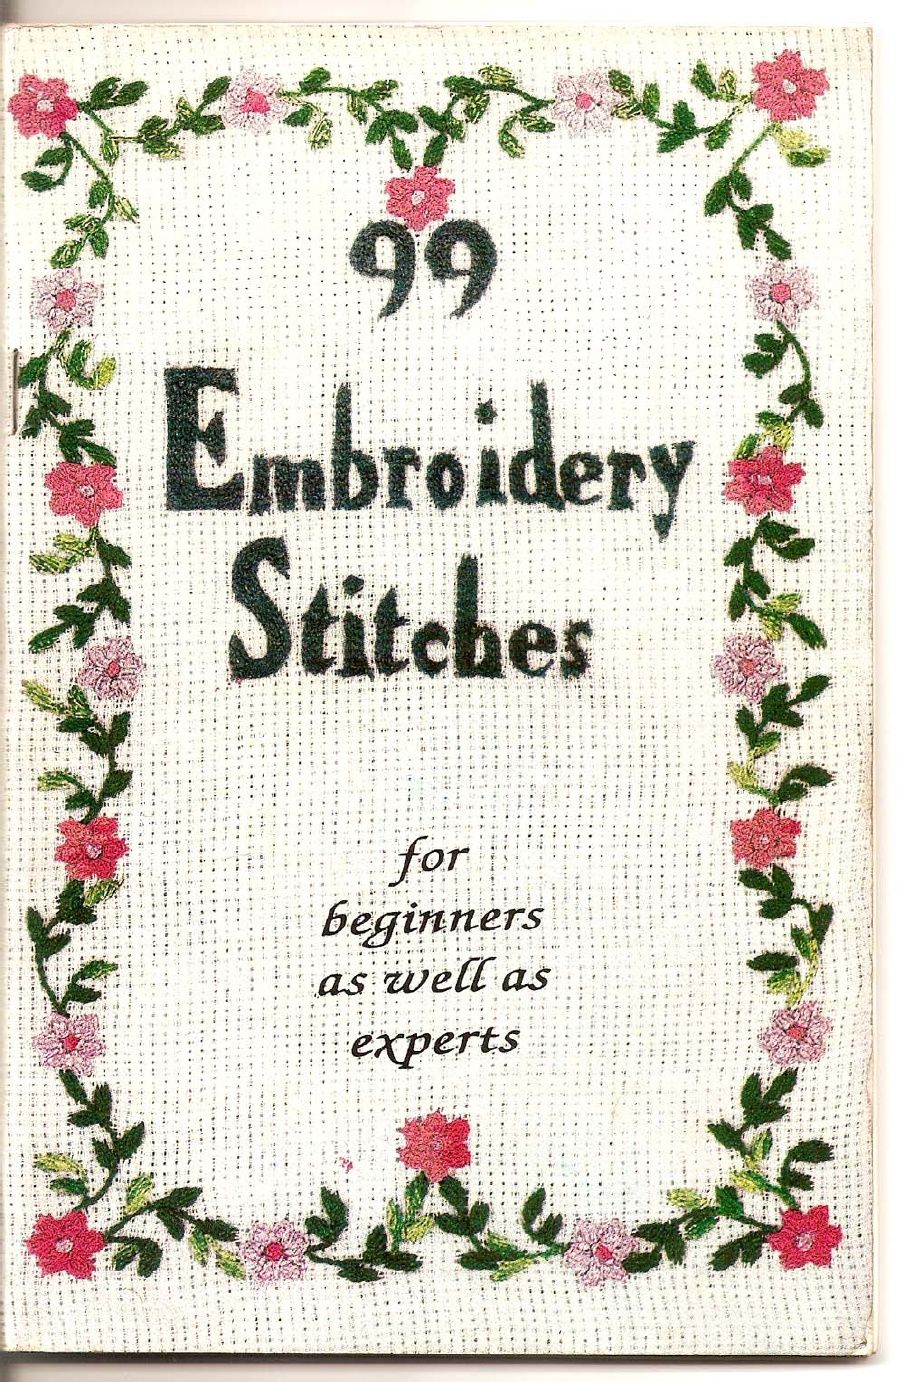 The most delightful embroidery pattern book wonderful designs 99 embroidery stitches free download bankloansurffo Image collections